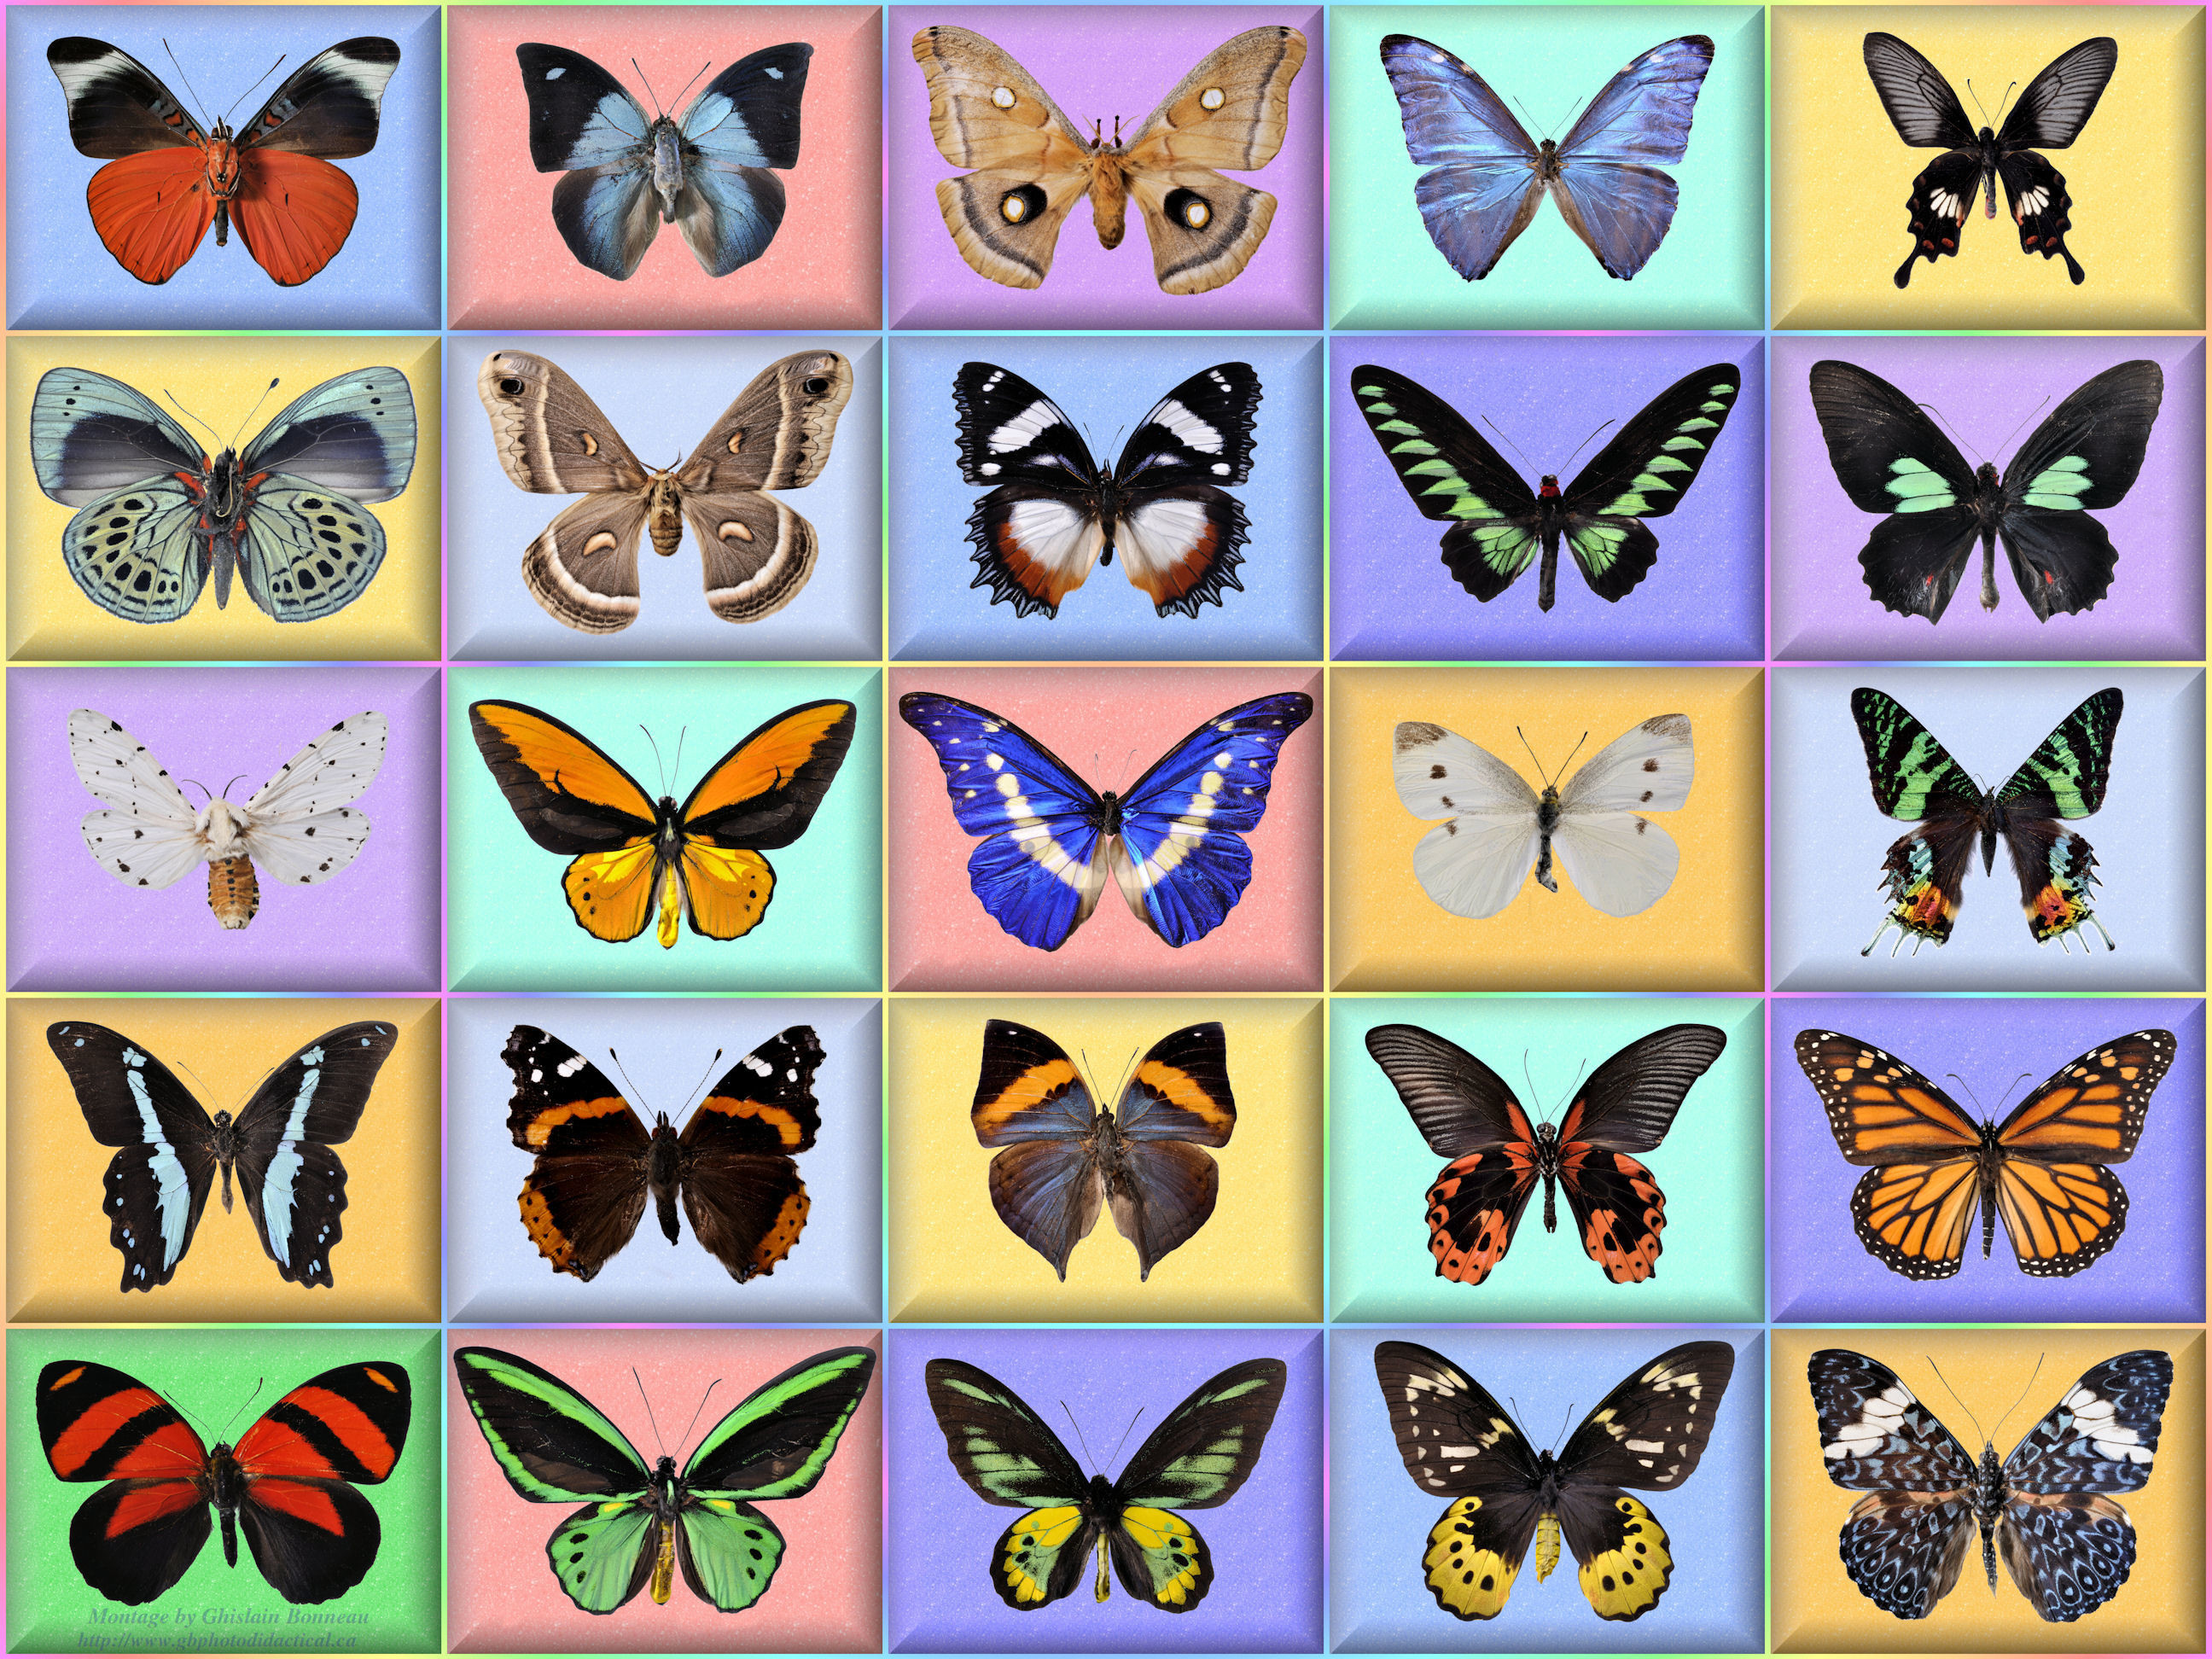 2592x1944 free wallpaper-34-butterfly-Full Screen